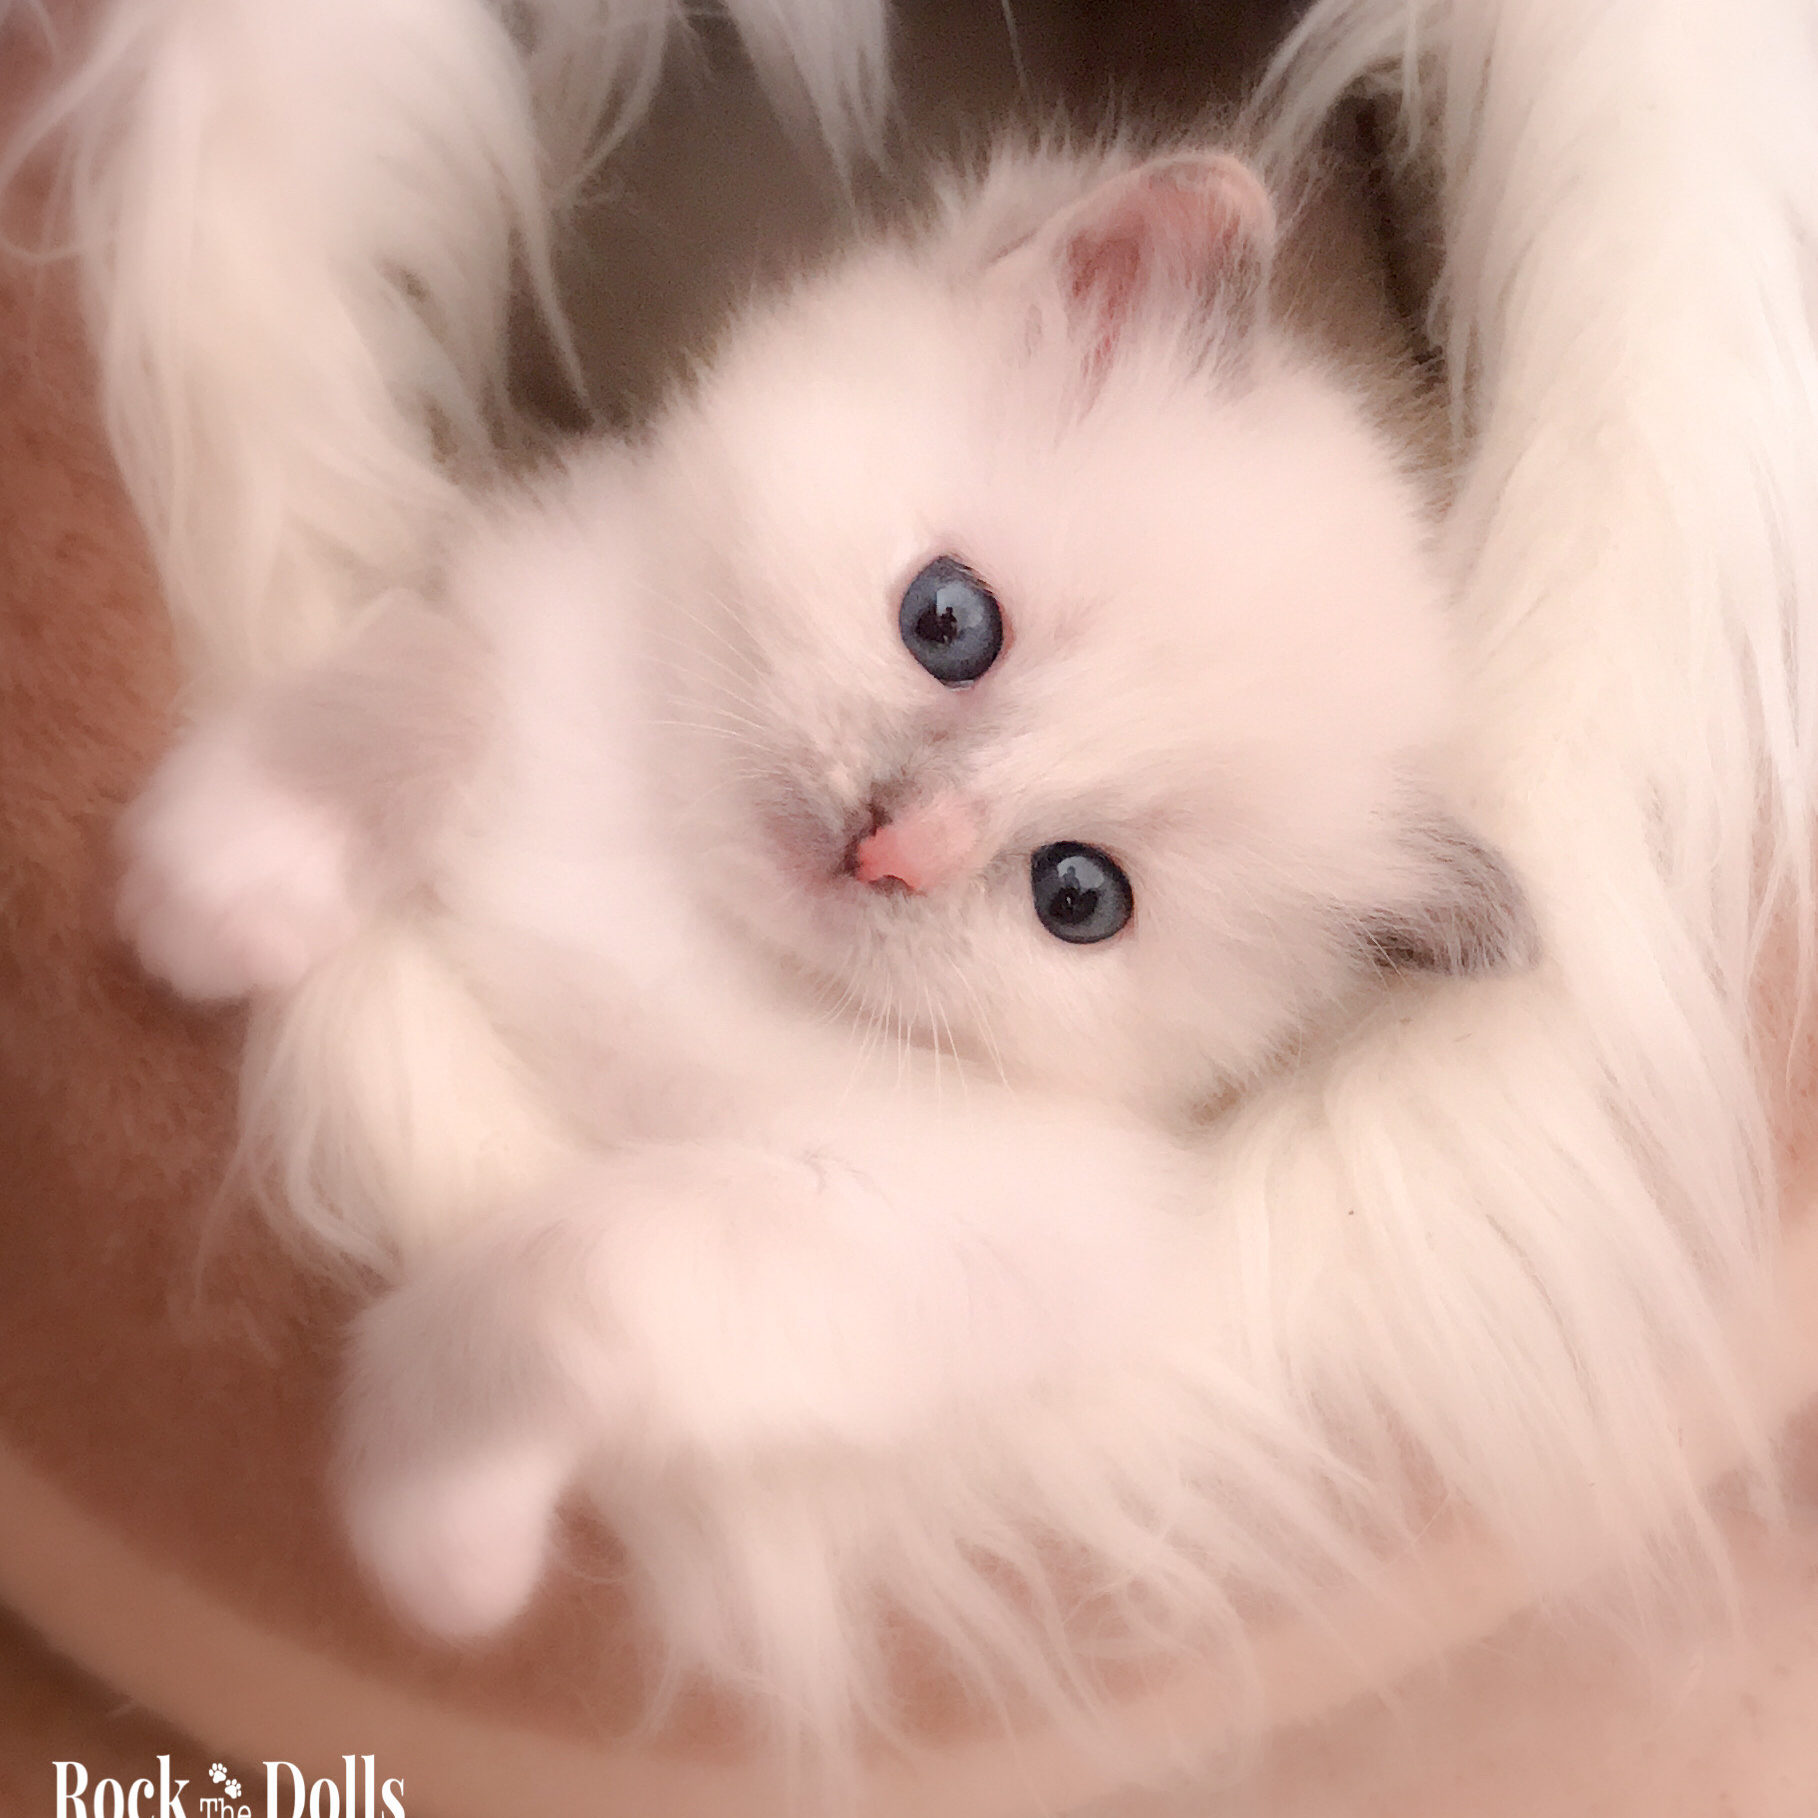 SHIPPIE - ragdoll blue sortie point mitted